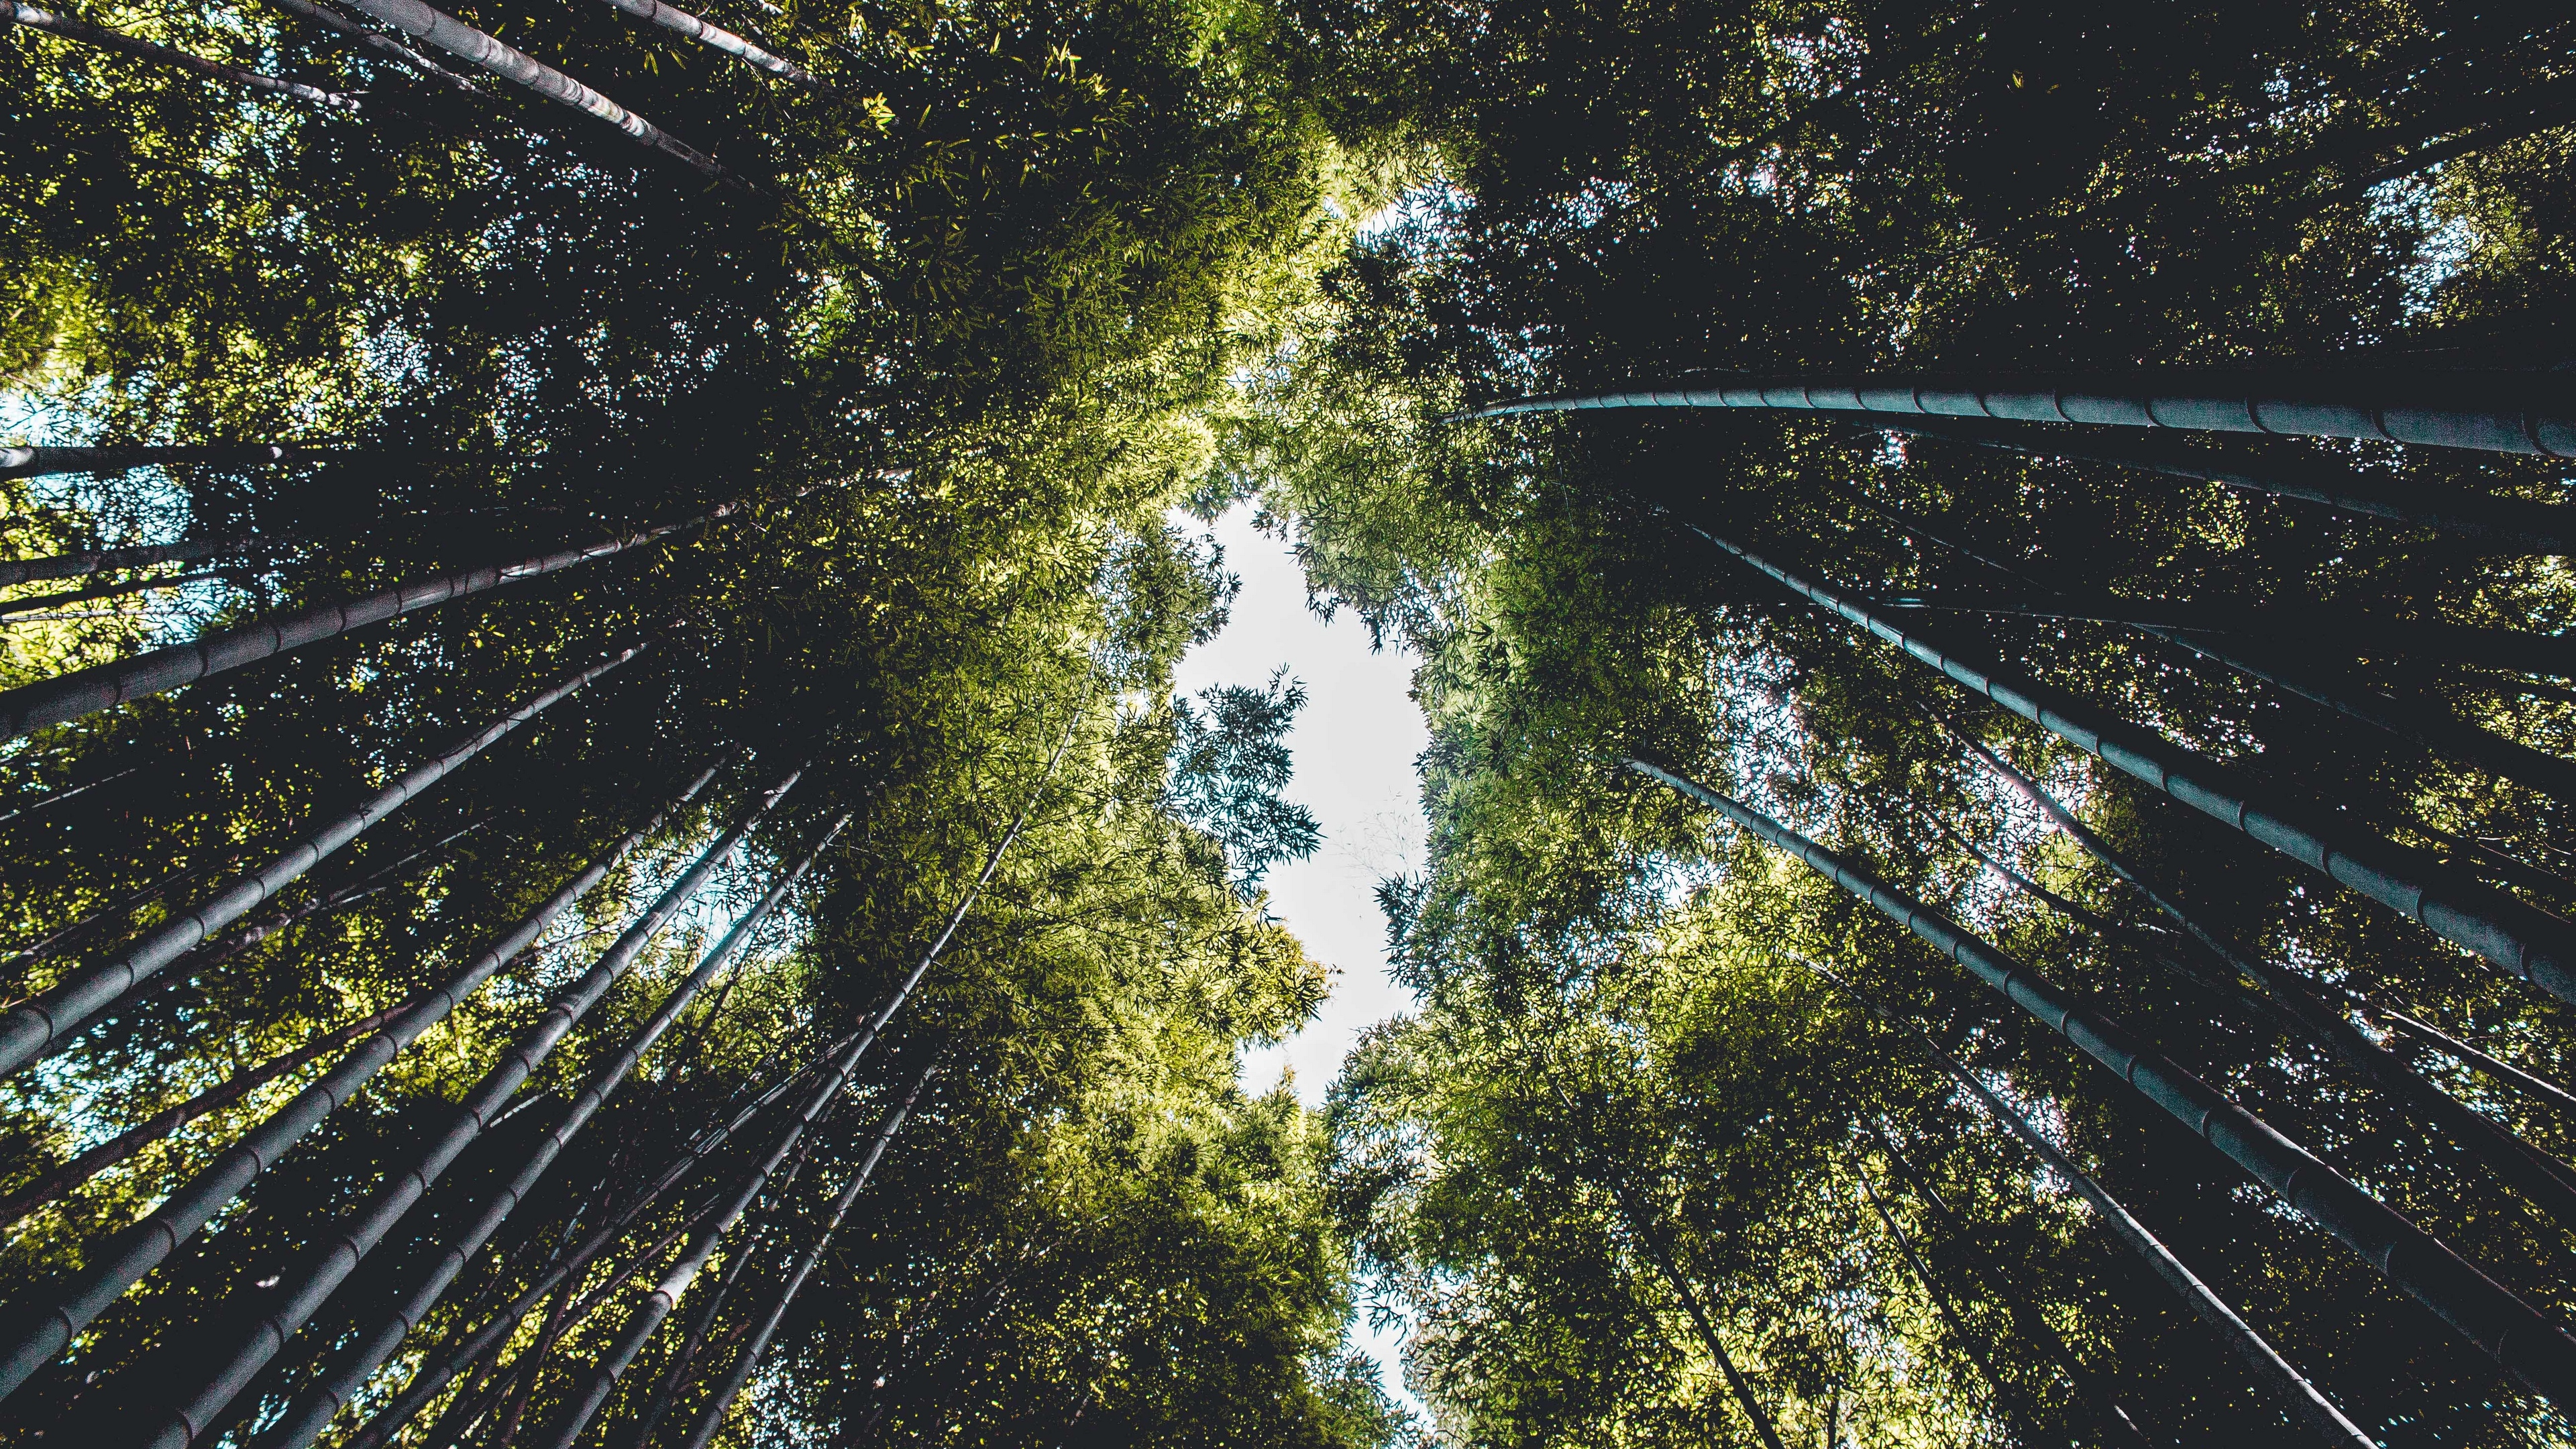 trees bottom view branches sky green leaves 4k 1541116797 - trees, bottom view, branches, sky, green, leaves 4k - Trees, branches, bottom view